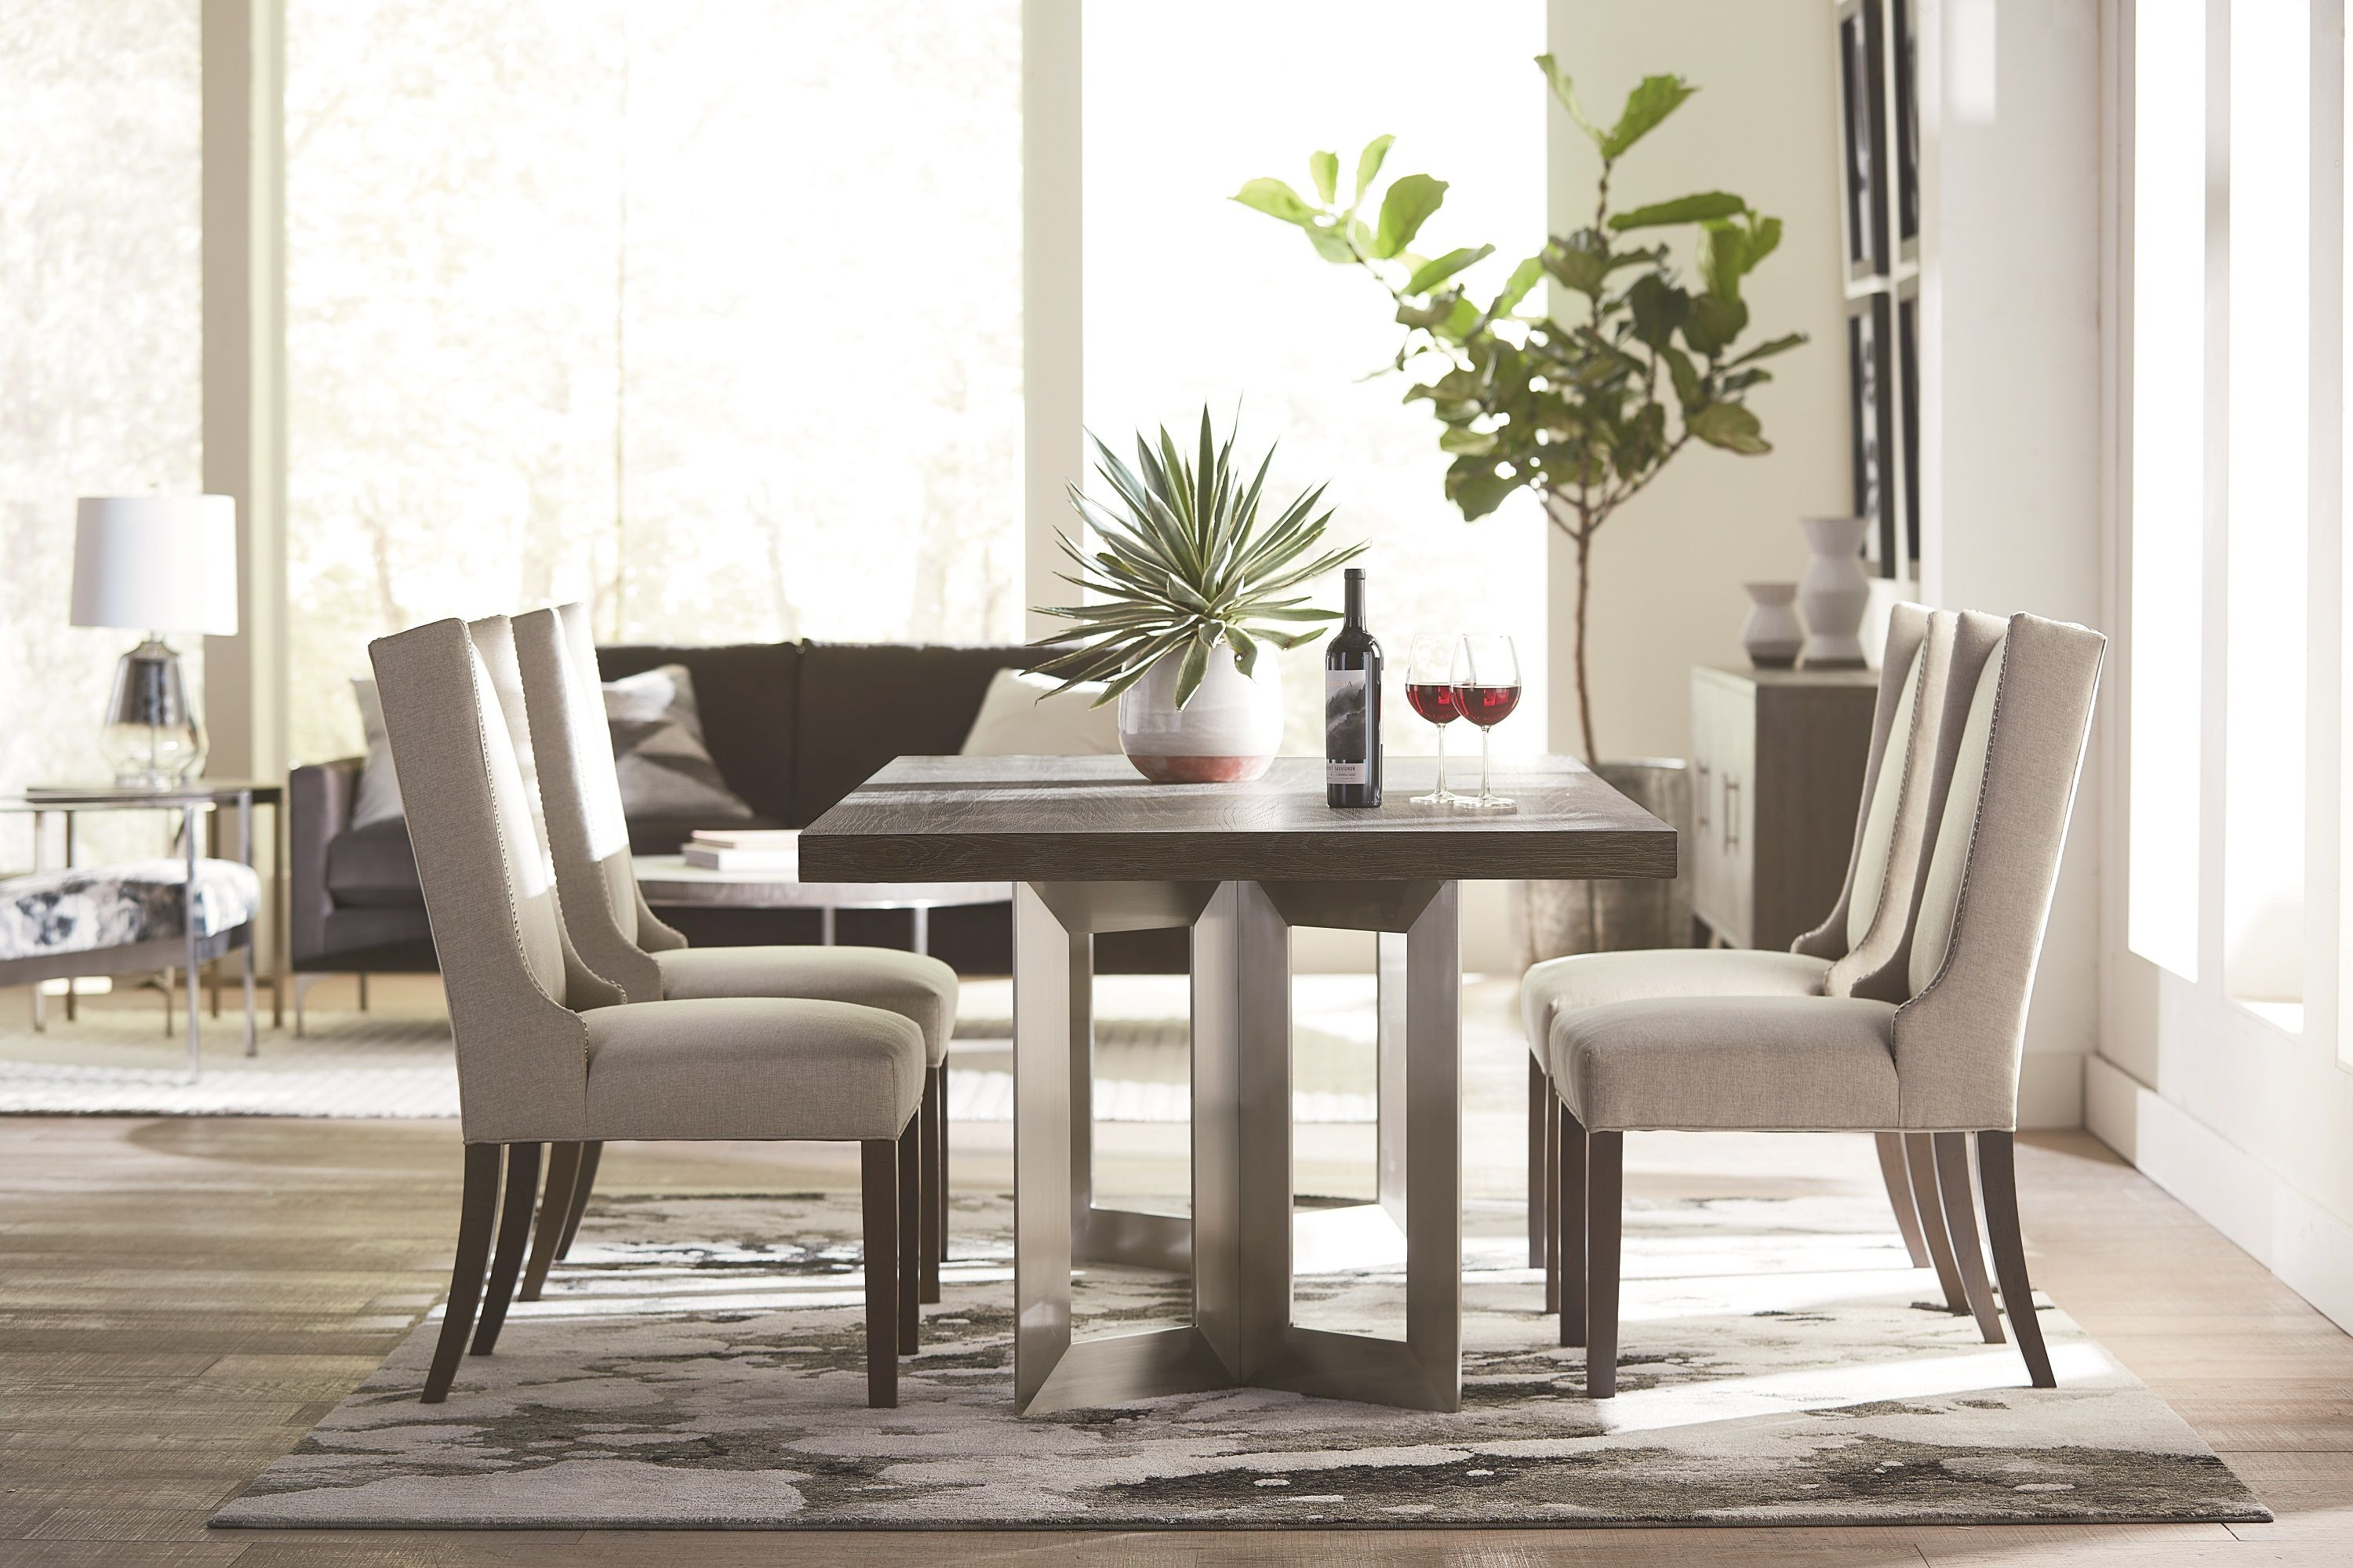 27+ Normandy dining table and chairs Best